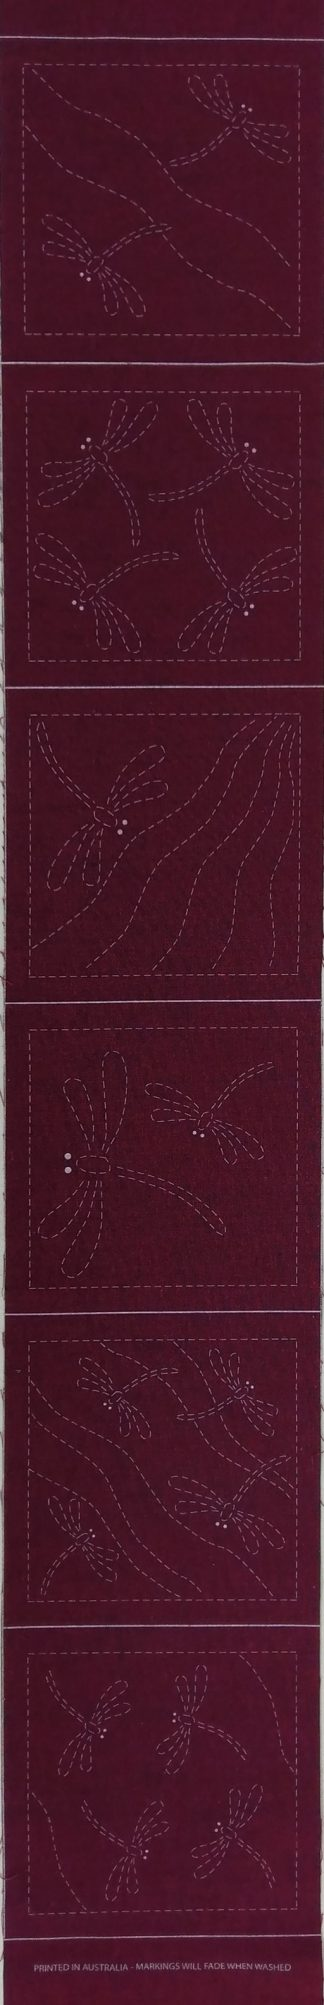 Sashiko Panel Dragonfly Coaster Runner Set No.DFCR-Cherry Red